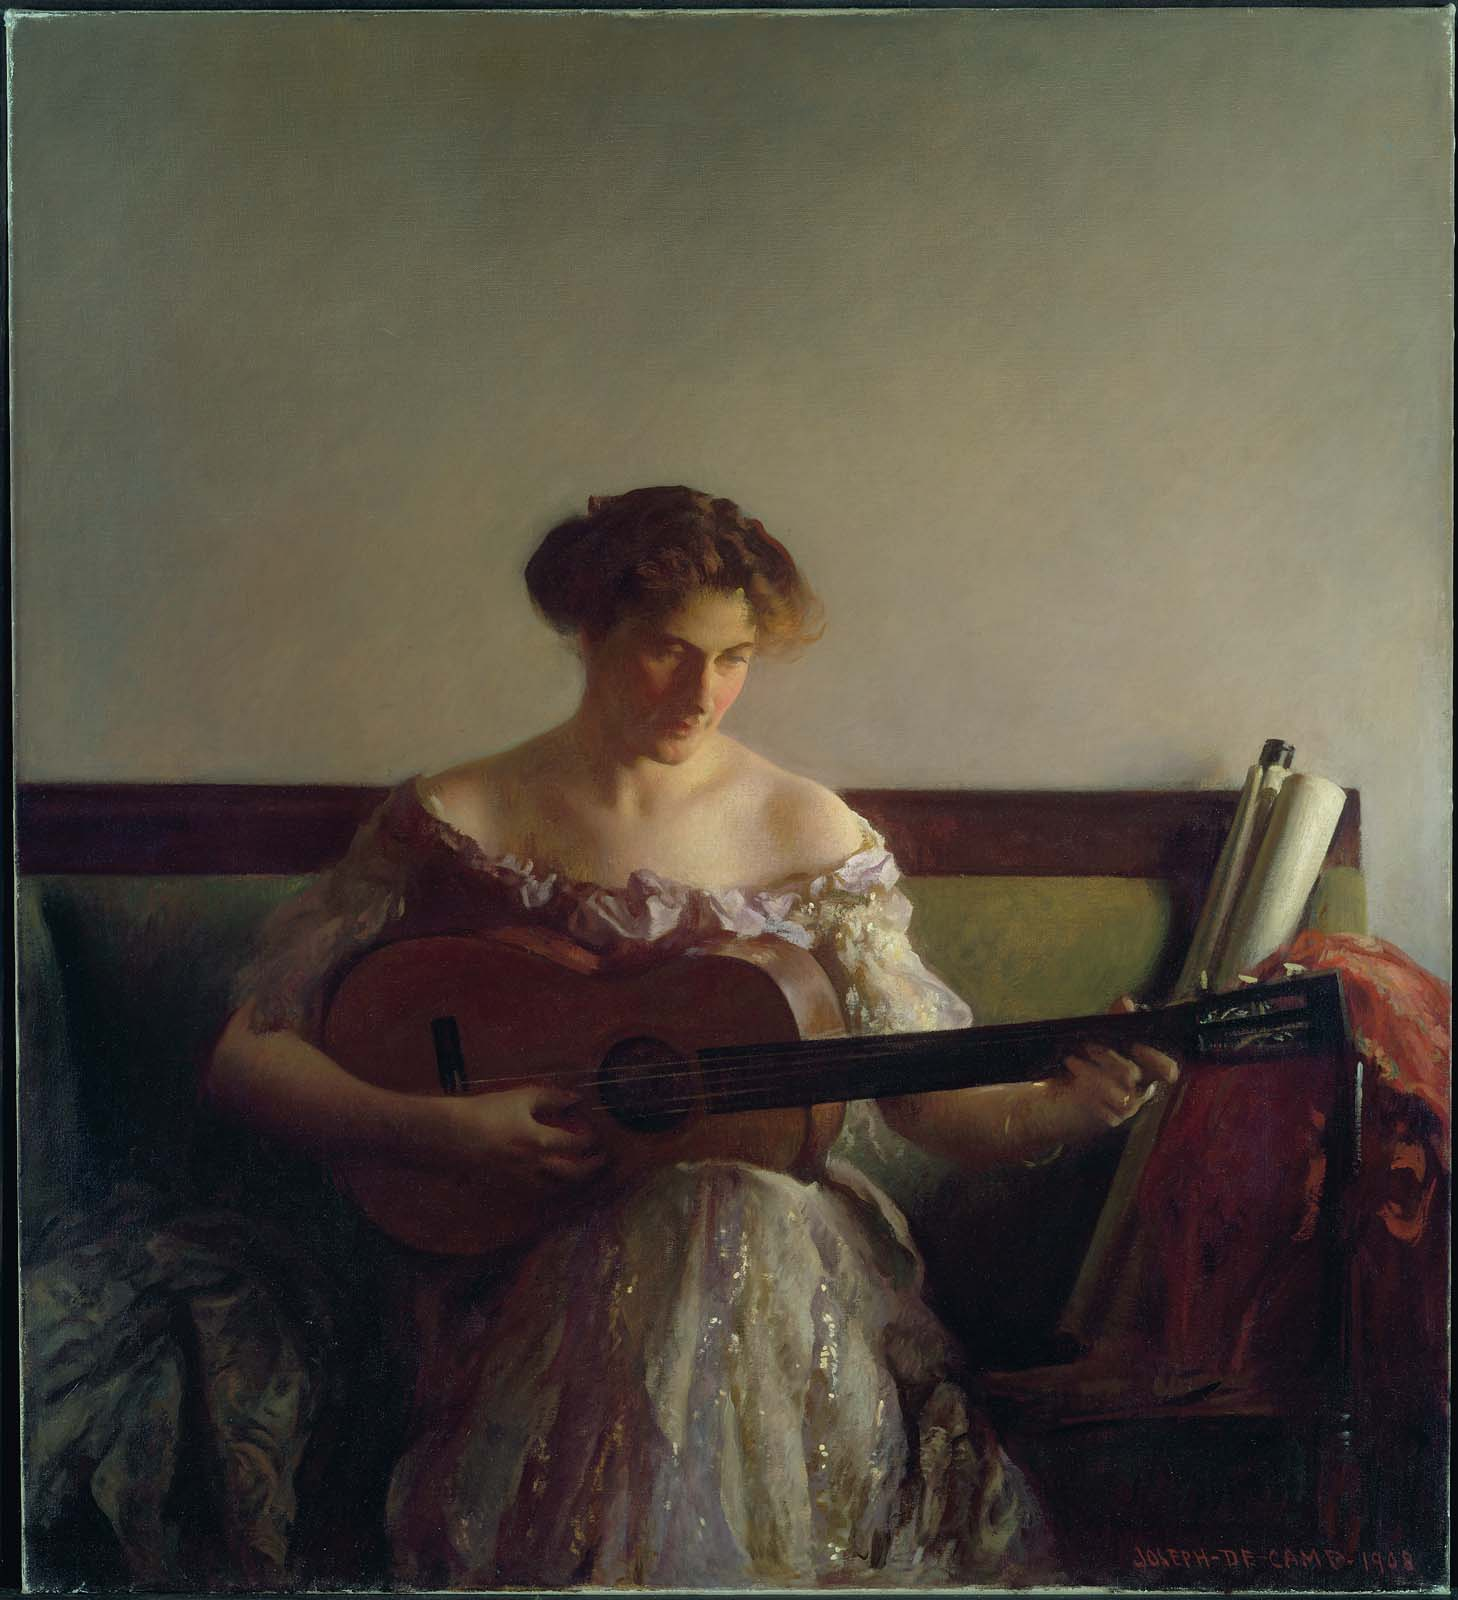 DeCamp, The Guitar Player, 1908